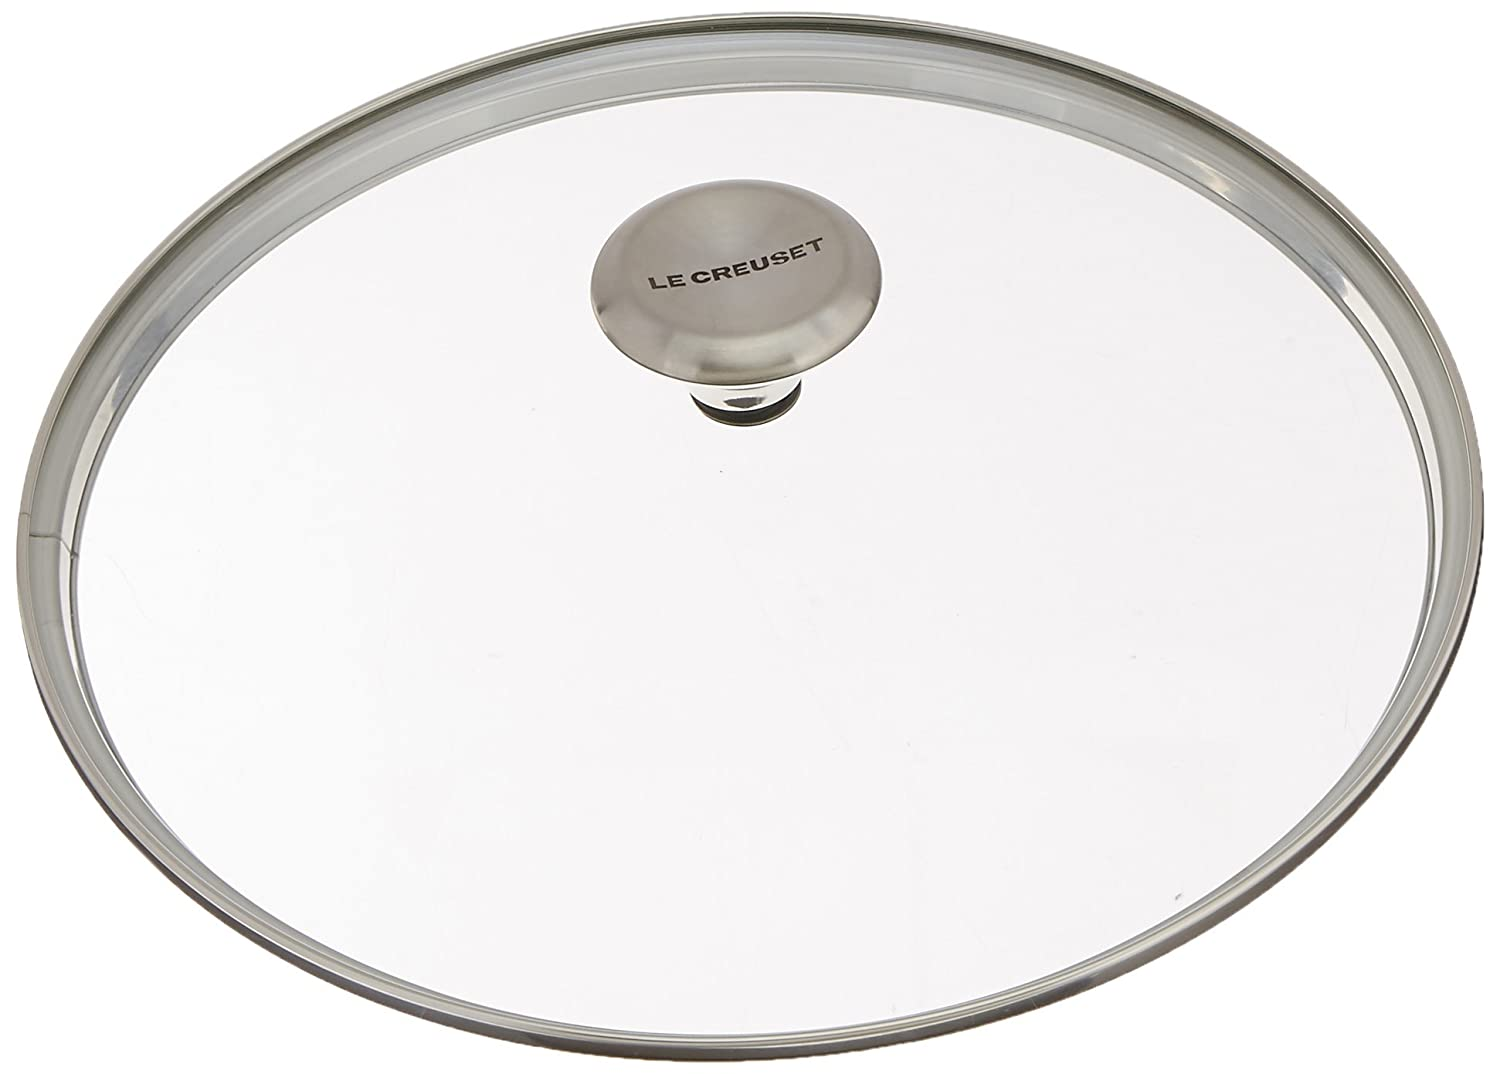 Le Creuset Signature Glass Lid, 8